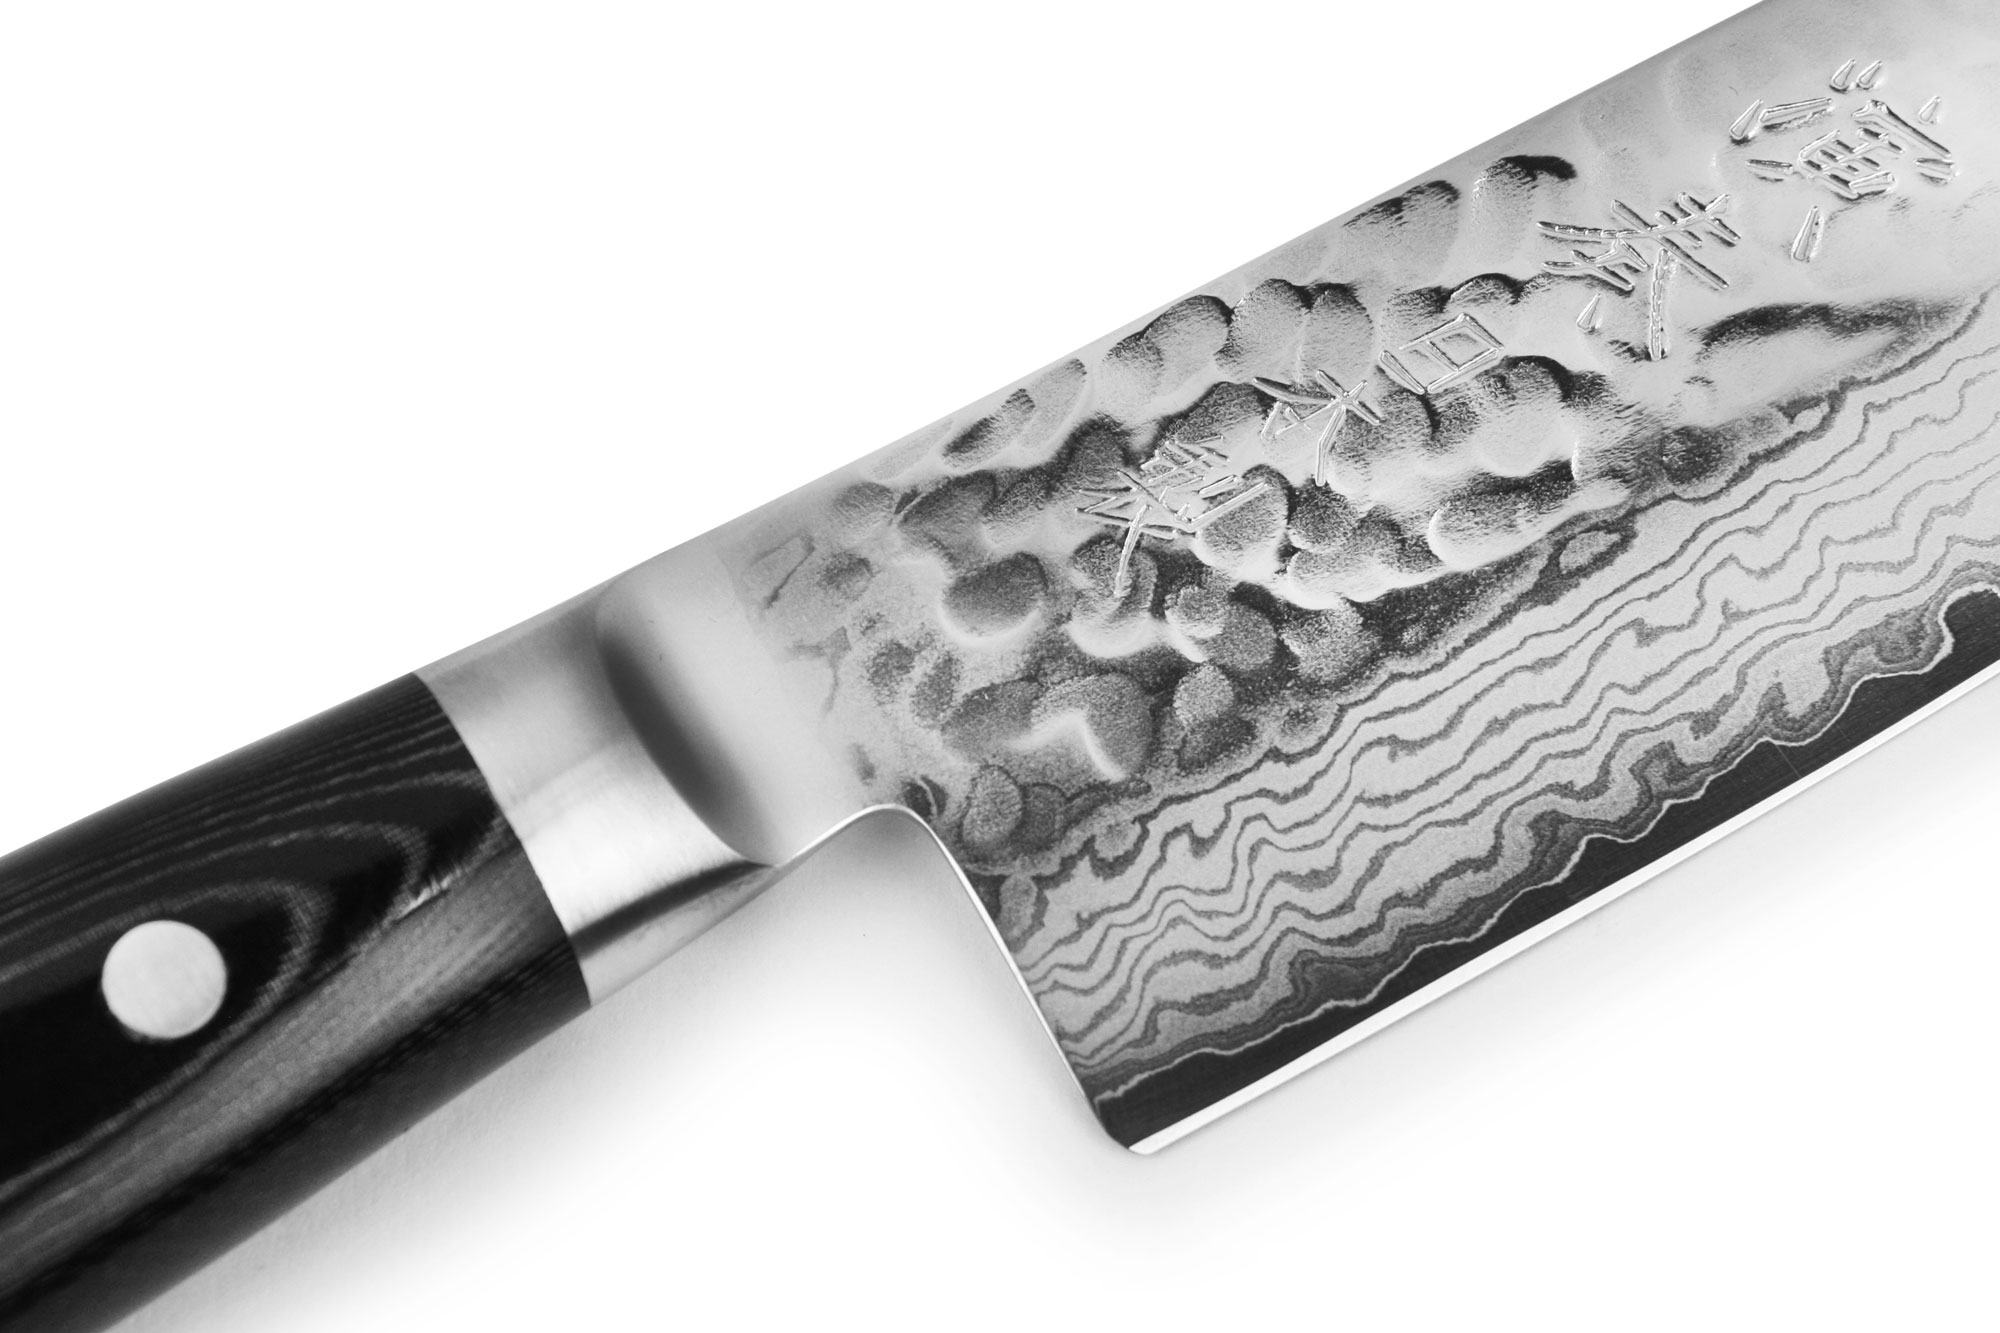 japanese chef s knives by enso made in japan cutlery and more